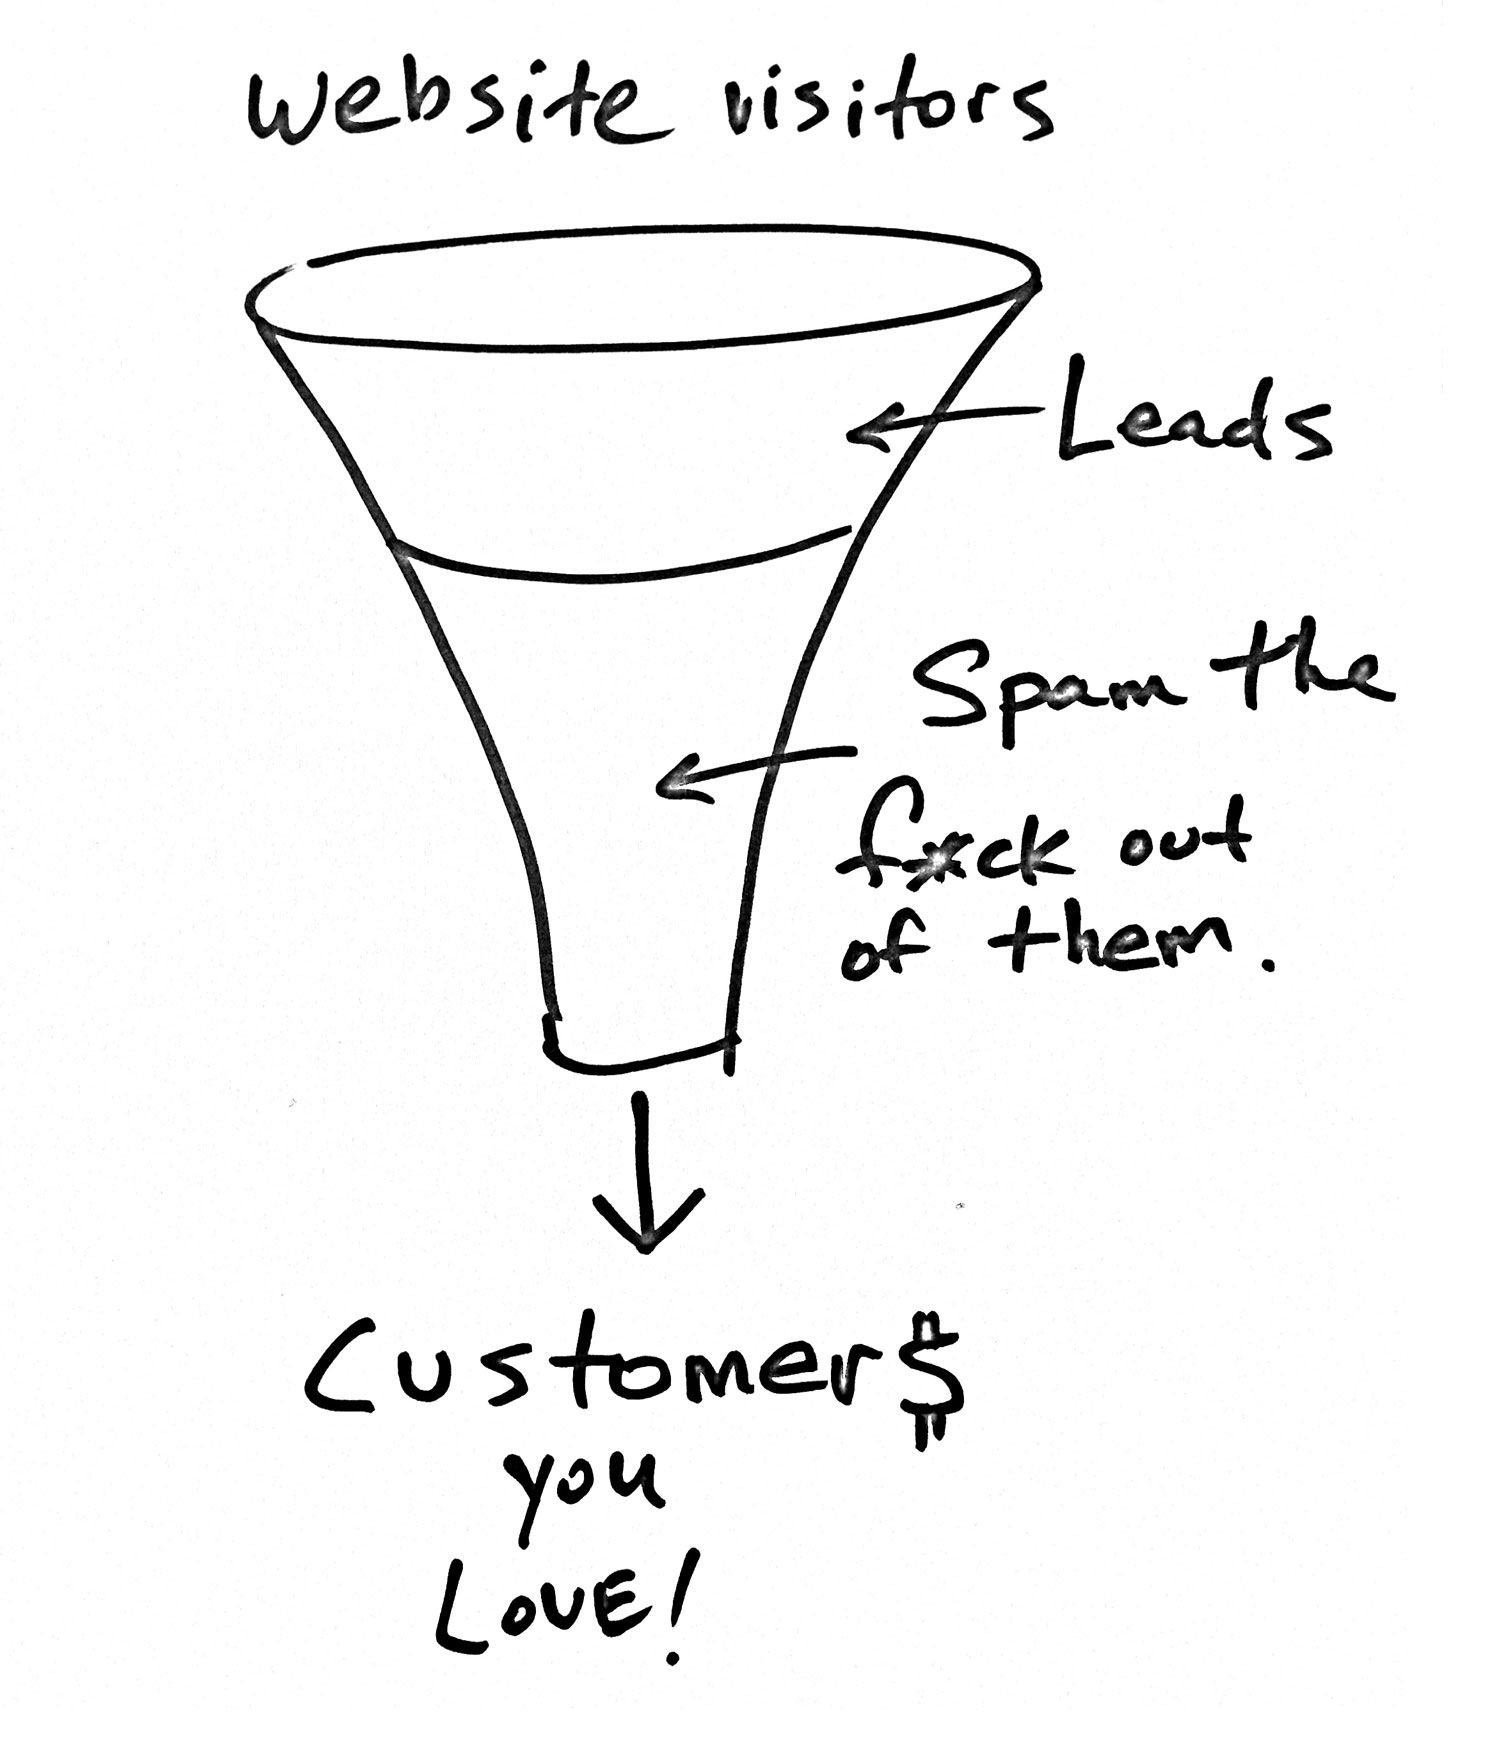 Traditional funnel approach